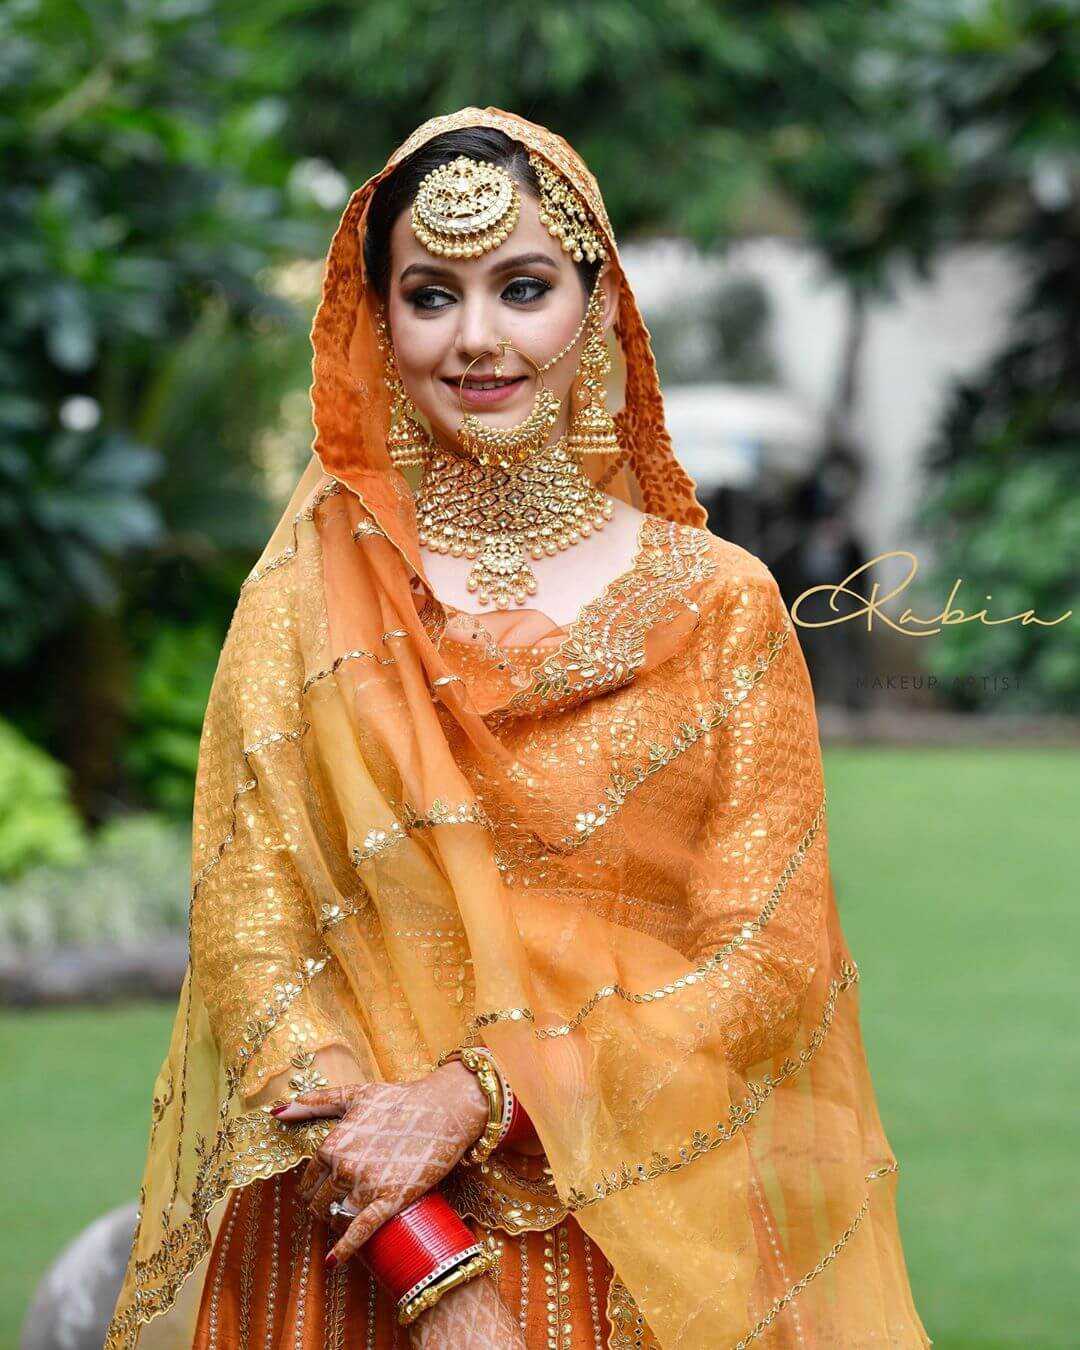 sikh bride in orange lehenga